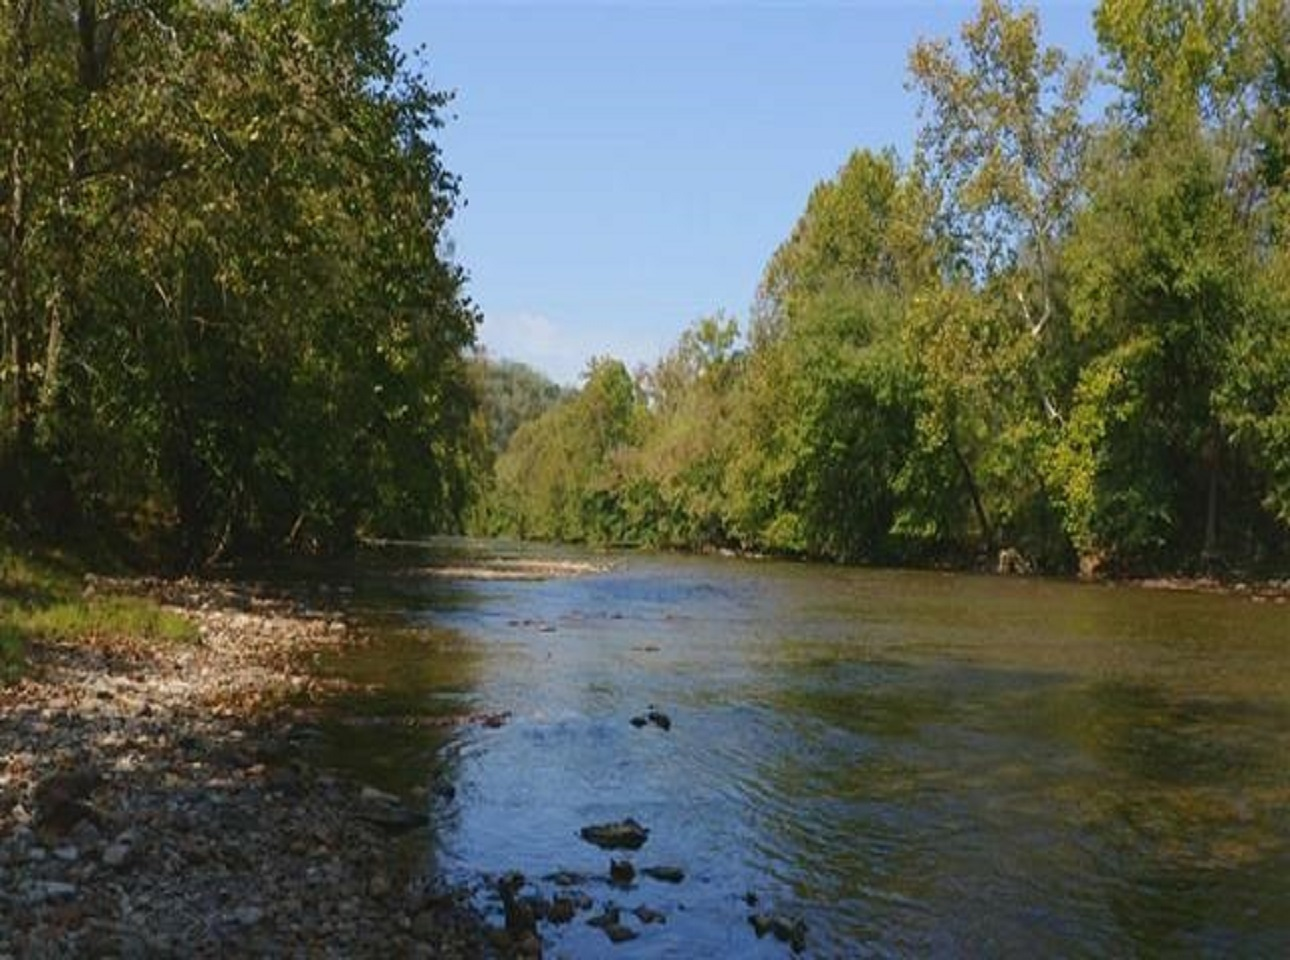 RIVERFRONT PROPERTY FOR SALE AT AUCTION CLAIBORNE COUNTY TENNESSEE